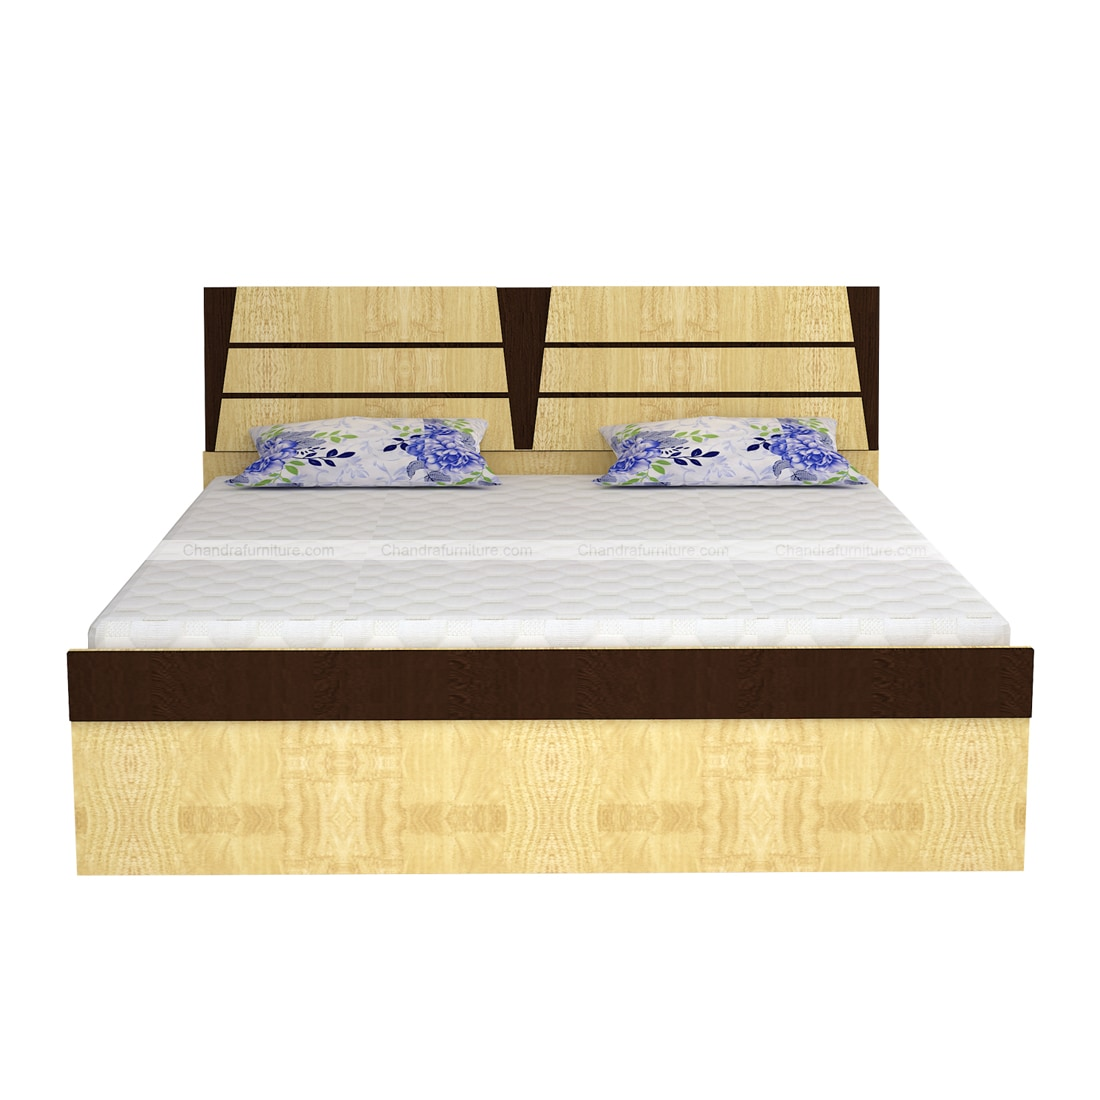 Chandra Furniture King Size Bed - Cosmo